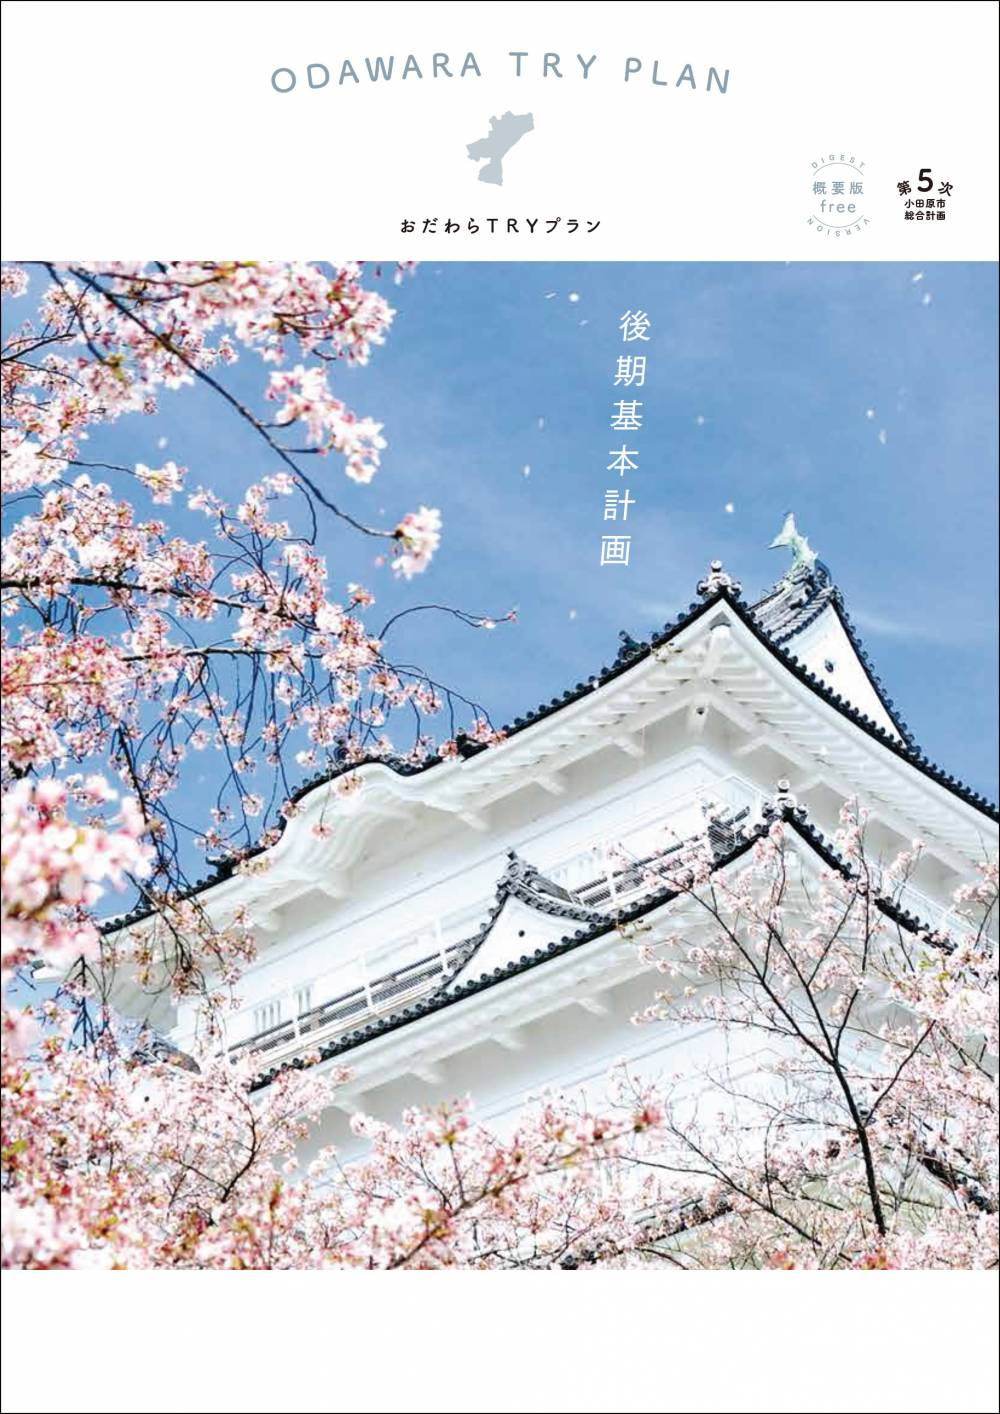 Cover of summary of odawara TRY plan. Cherry tree and Odawara-jo Castle come out.